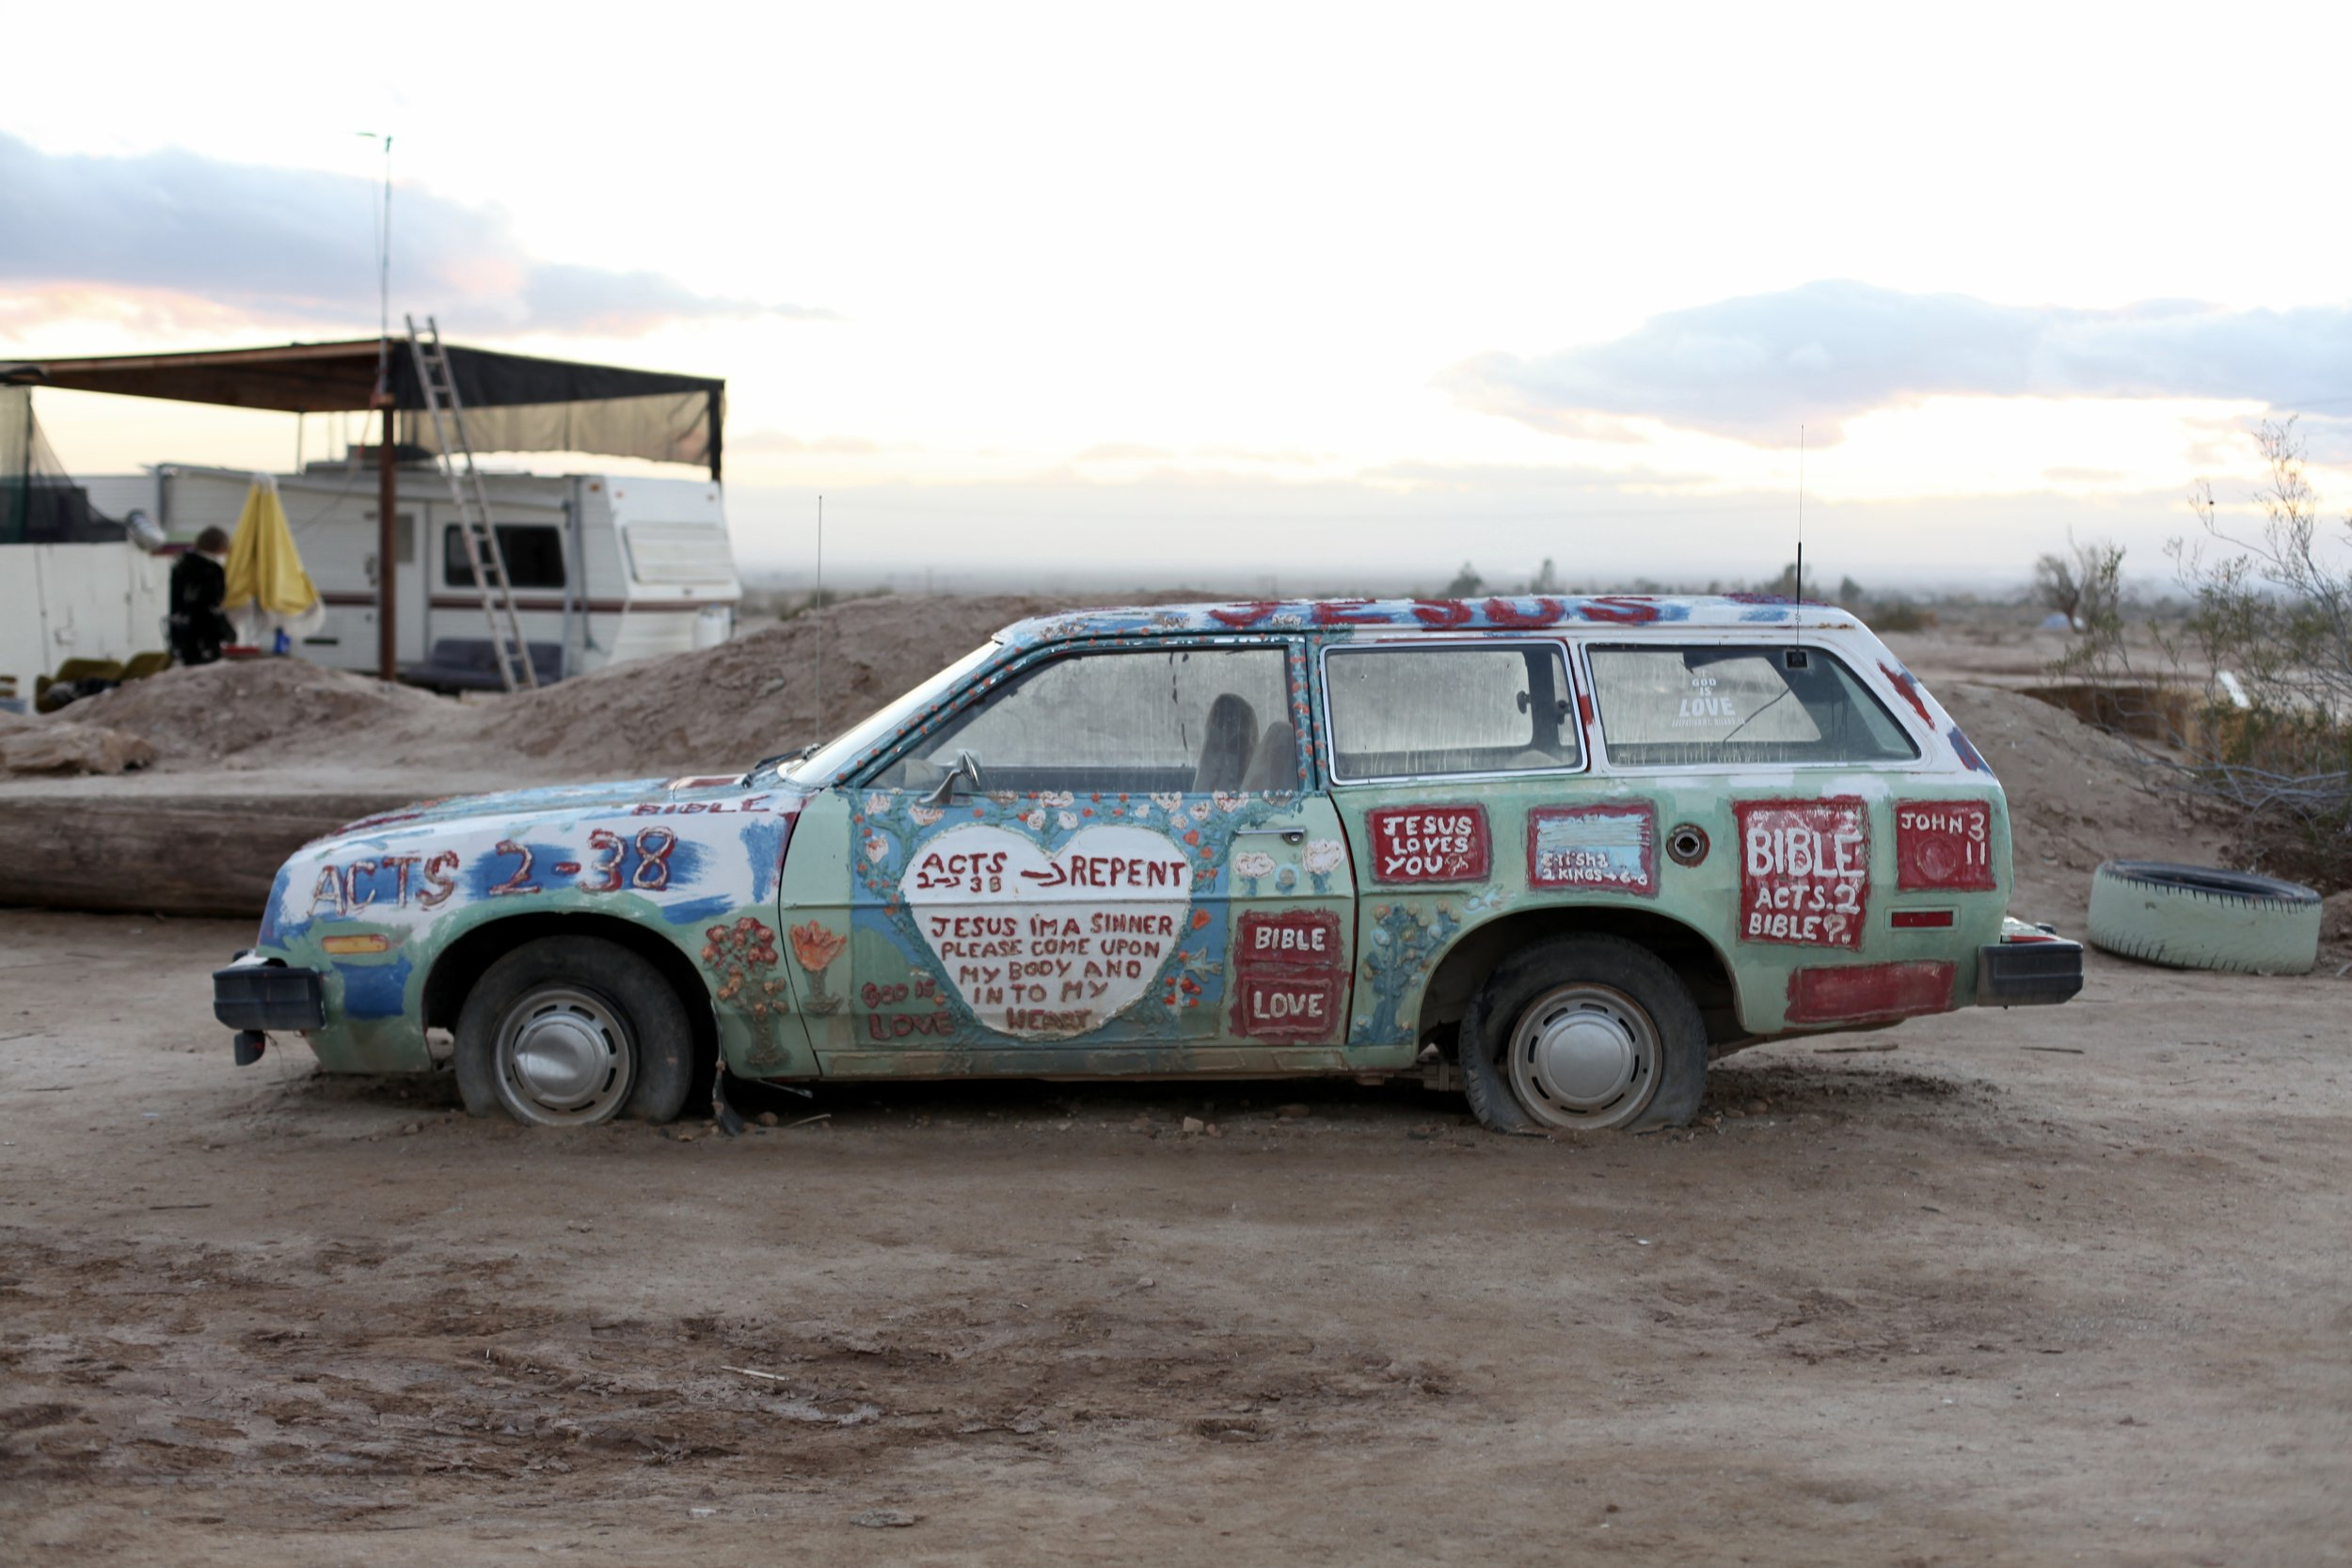 A Ford Pinto station wagon hand-painted with Bible verses is one of many such cars surrounding Salvation Mountain in Slab City, Calif. on Jan. 6, 2017.(Photo by Ethan Jakob Craft.)